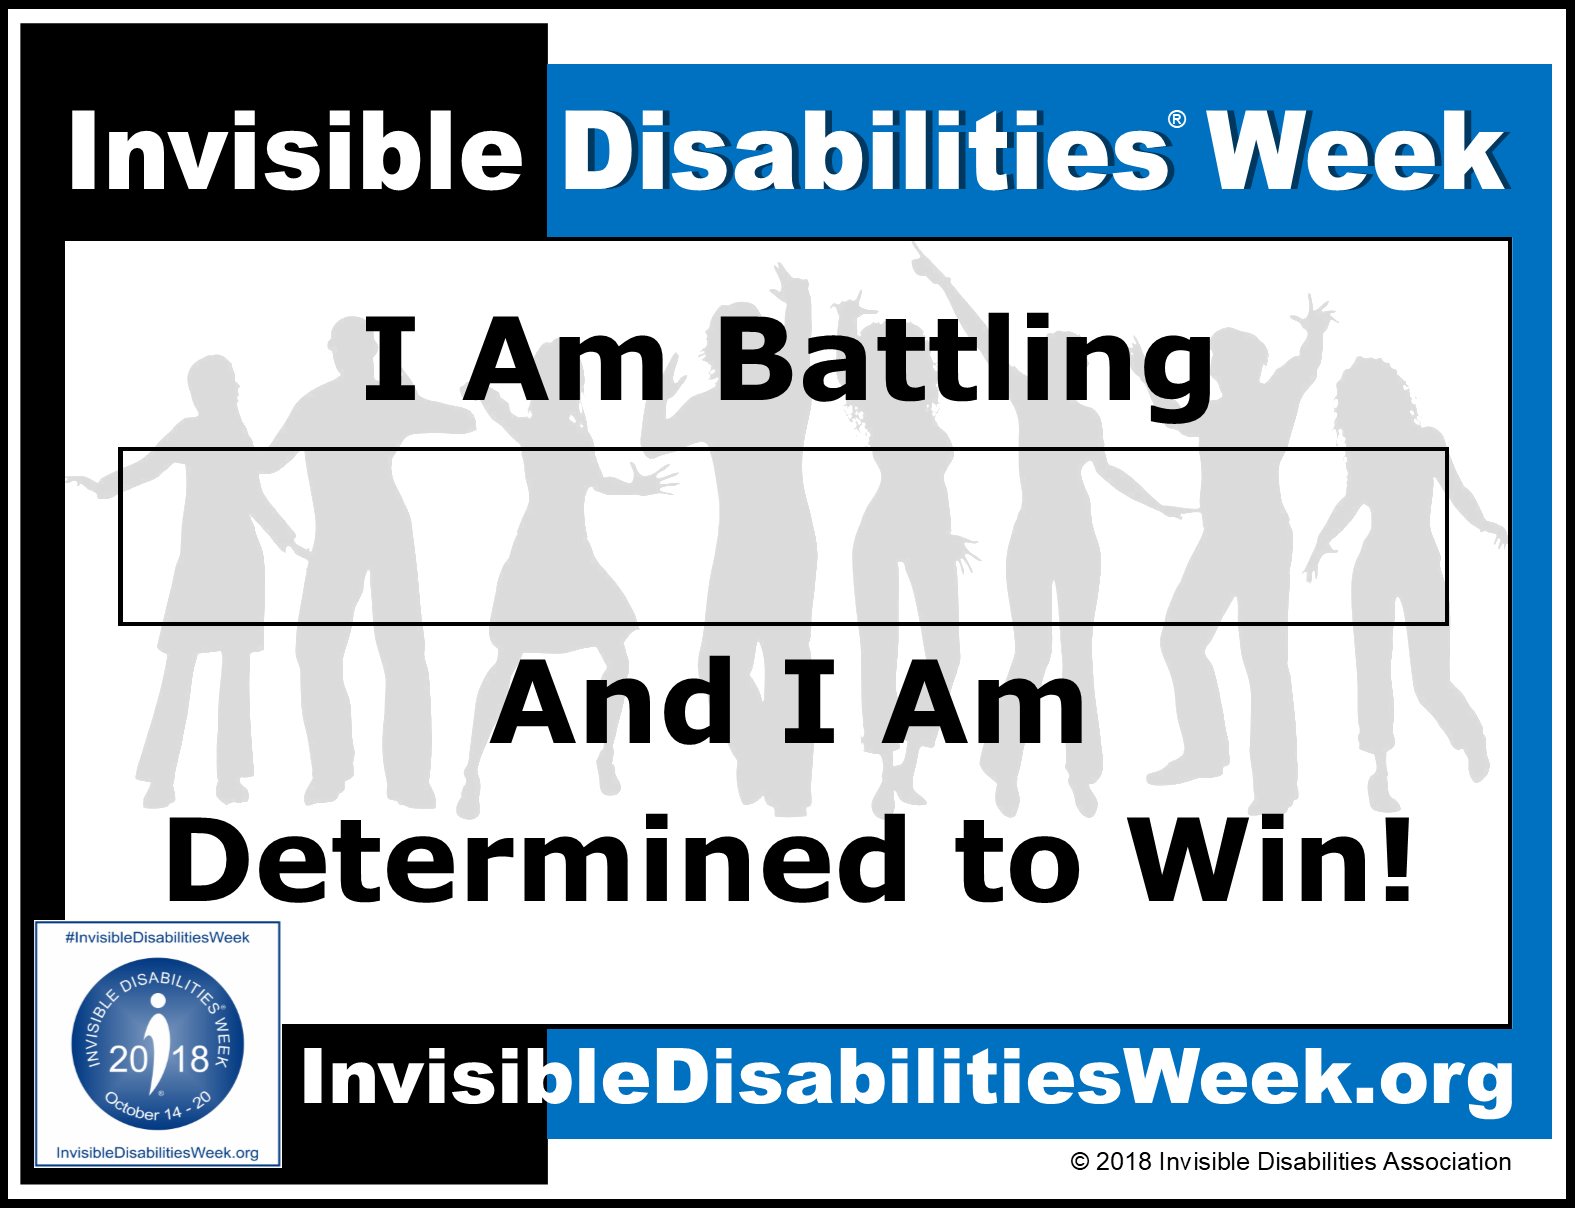 2018 Invisible Disabilities Week I Am Determined to Win Sign